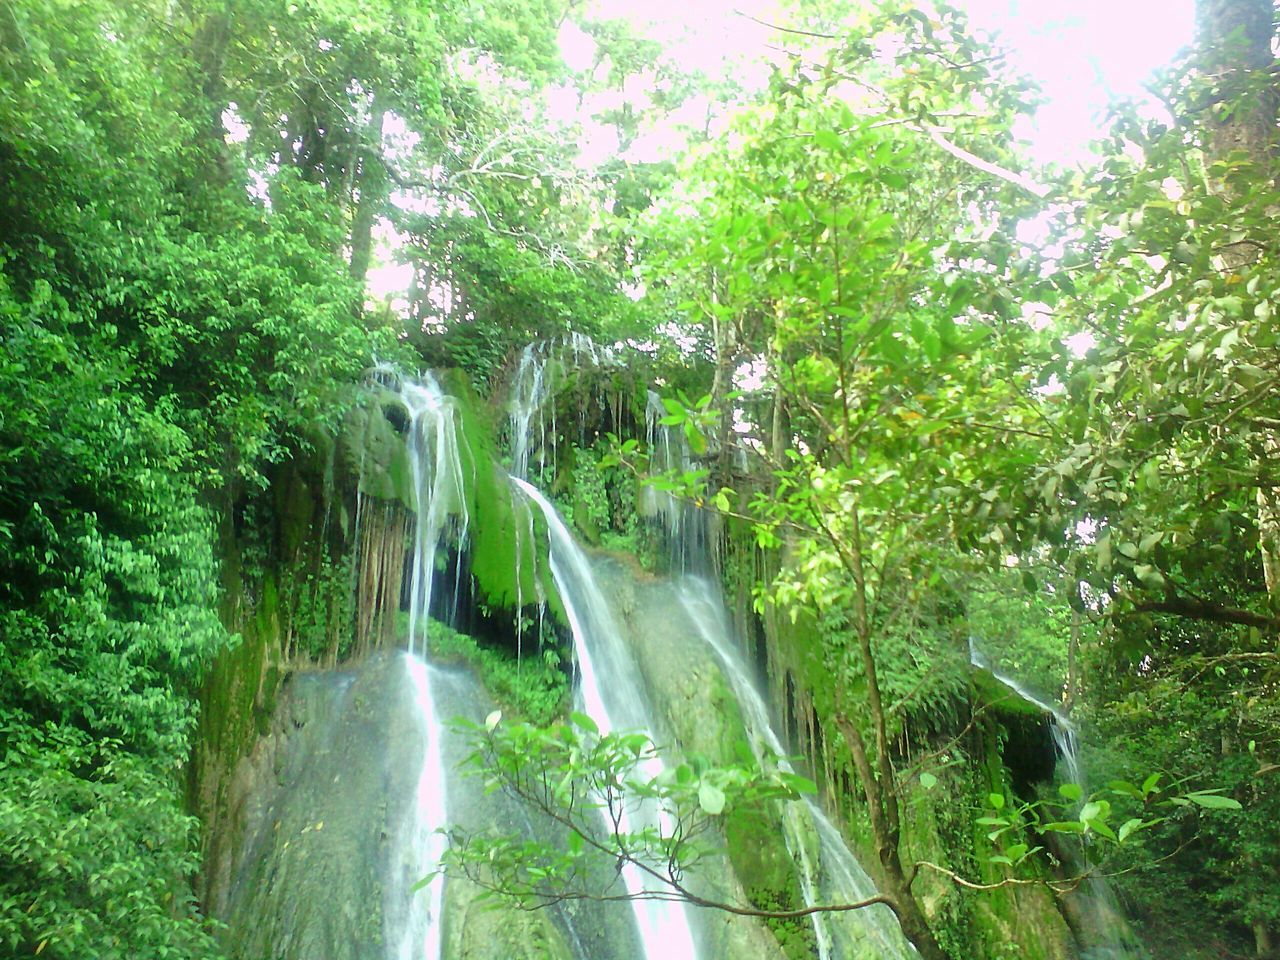 Water Nature Beauty In Nature Green Color Tree Scenics No People Growth Forest Waterfall Outdoors Day Freshness GreenNature Green Green Green!  Nature Photography Nature_collection Beauty Of Nature Outdoorphotograph NoPeopleAround Water Slides Rocks In Water Waterfalls Waterandrocks Motion